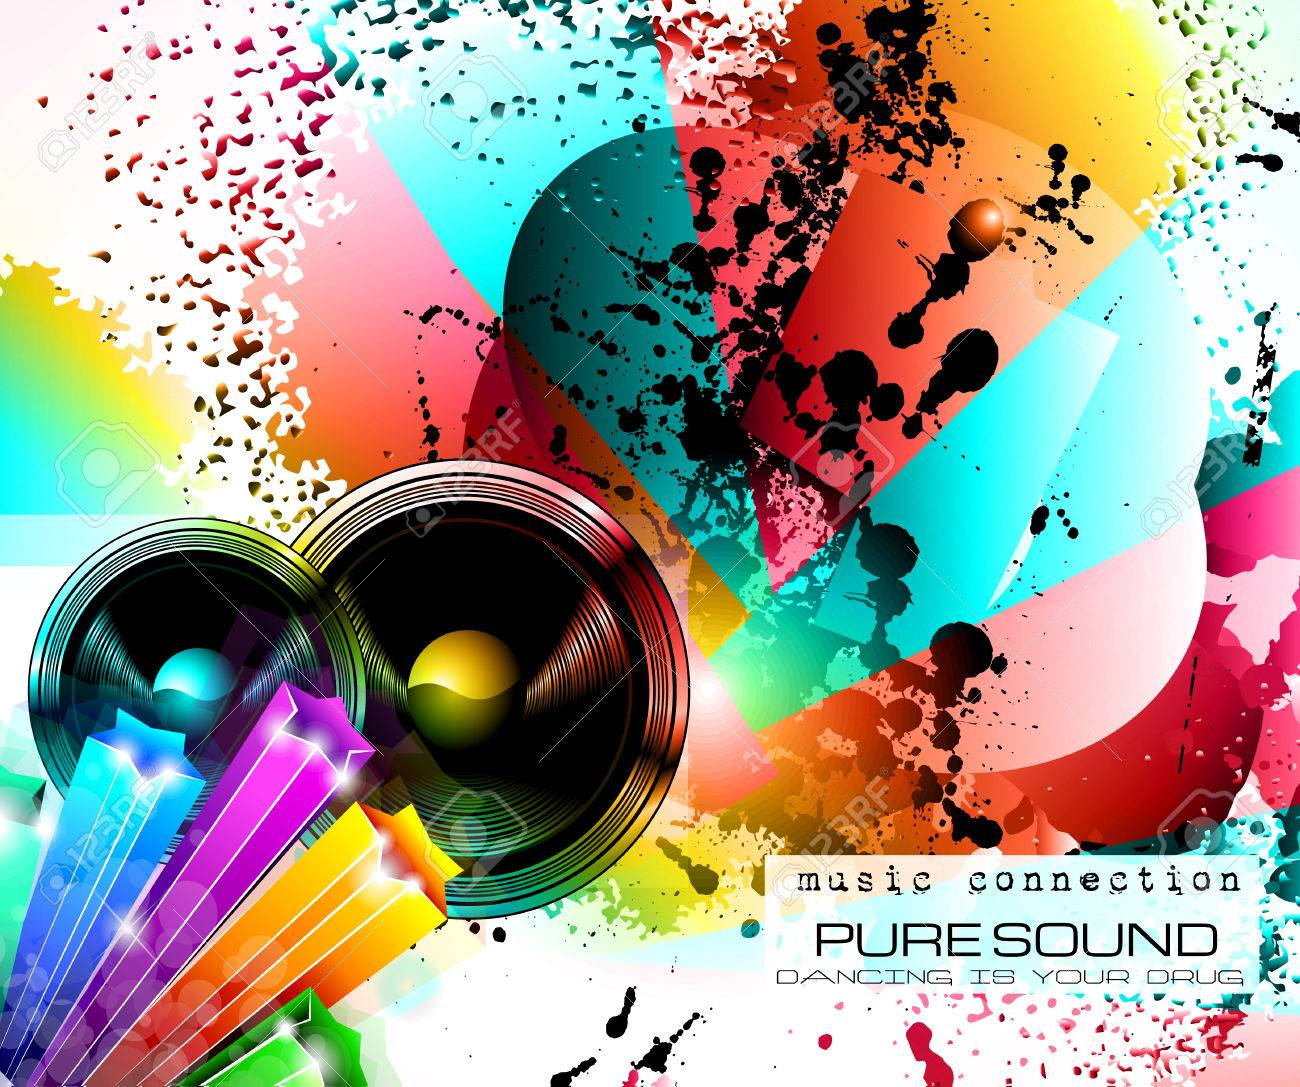 party club flyer for music event with explosion of colors includes